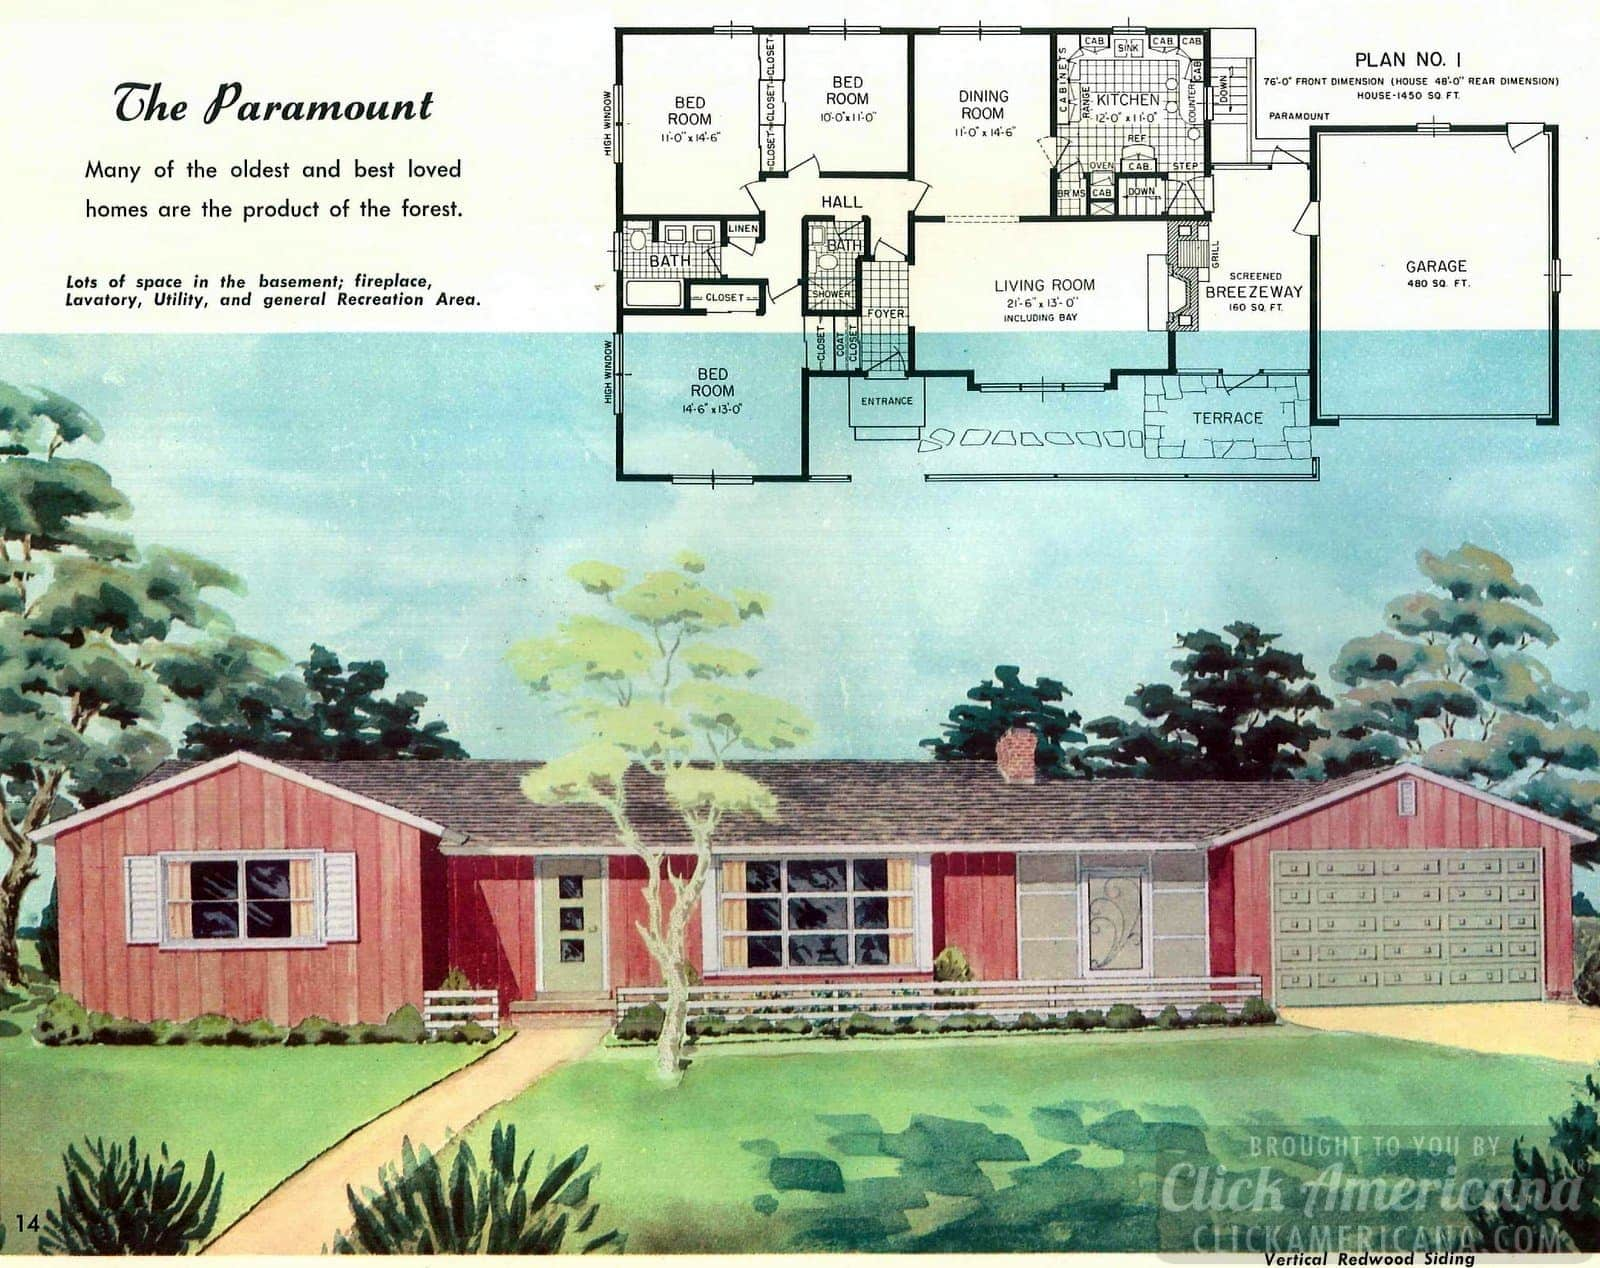 The Paramount: Home design plans from 1958